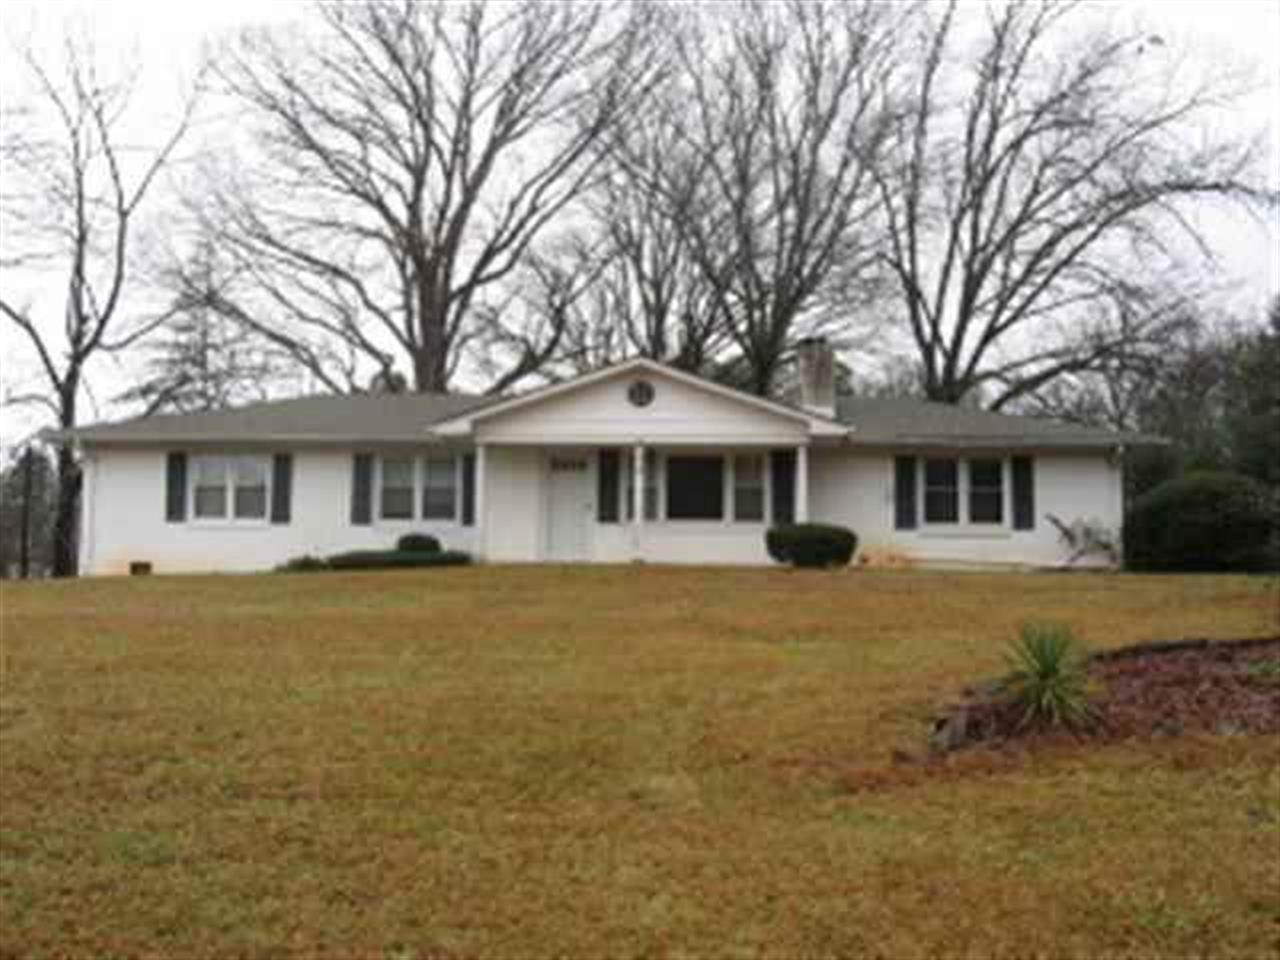 Real Estate for Sale, ListingId: 26975869, Seneca, SC  29672